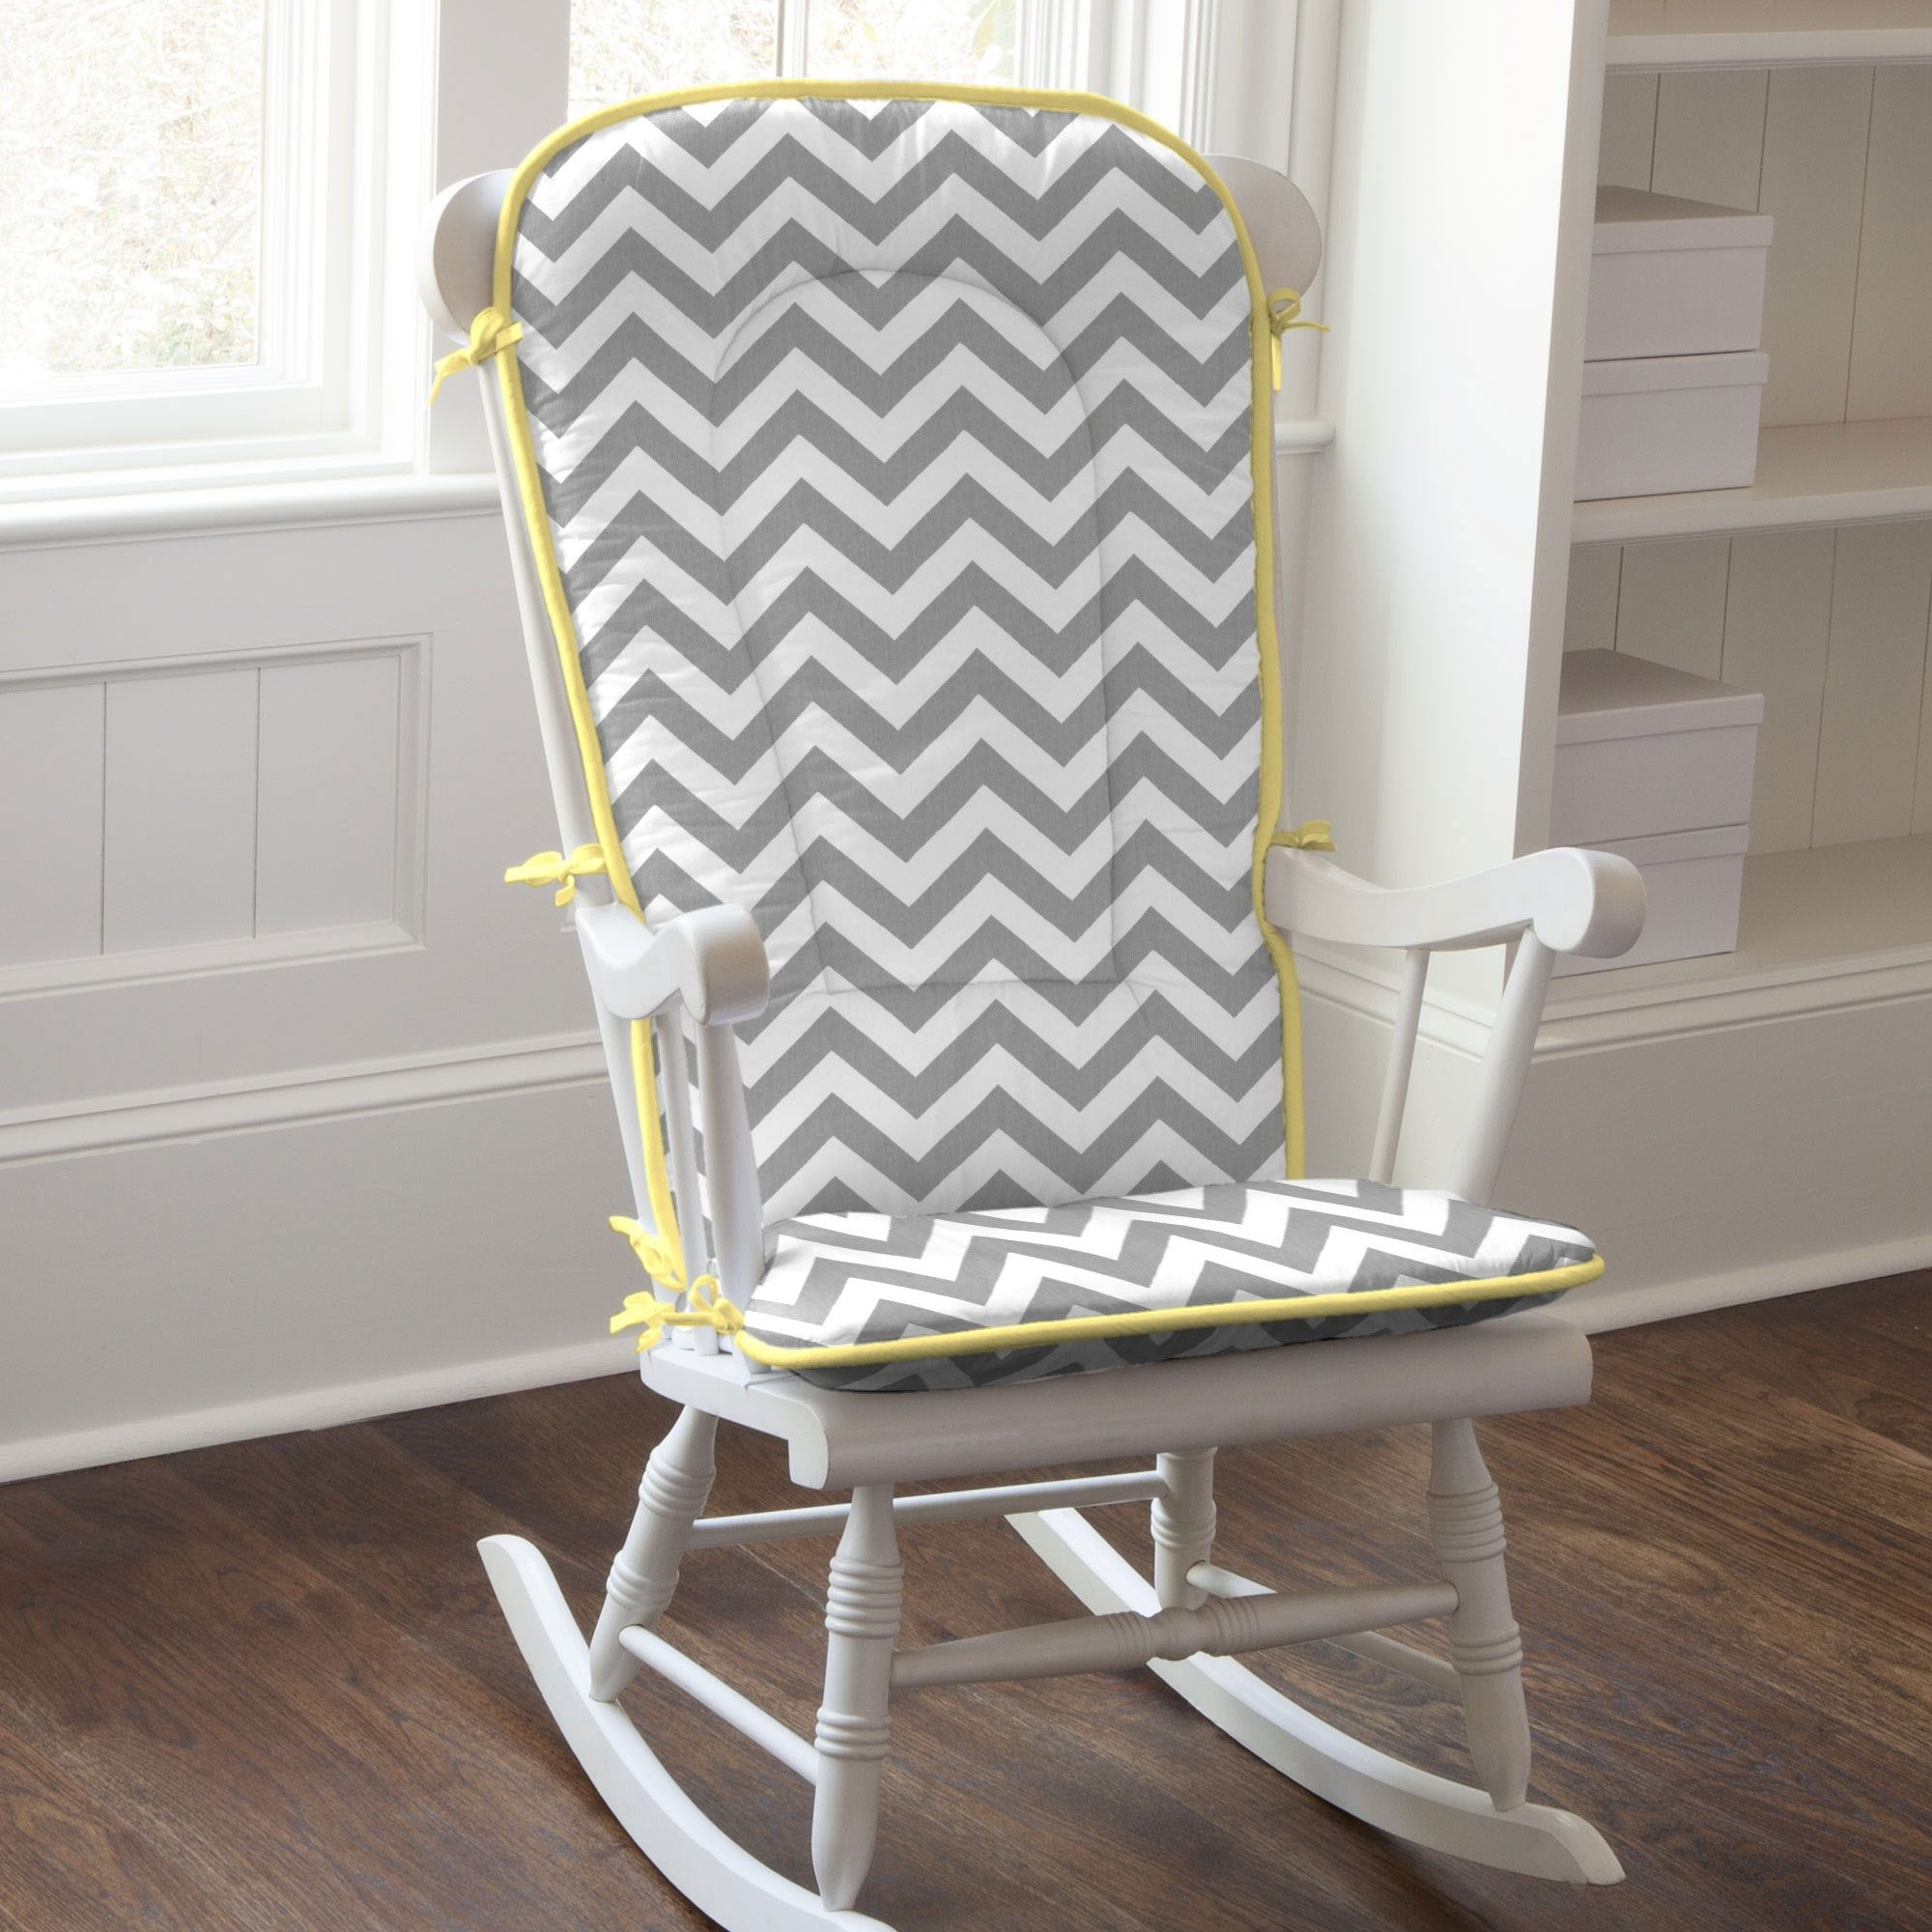 Rocking Intended For Rocking Chairs With Cushions (View 10 of 15)